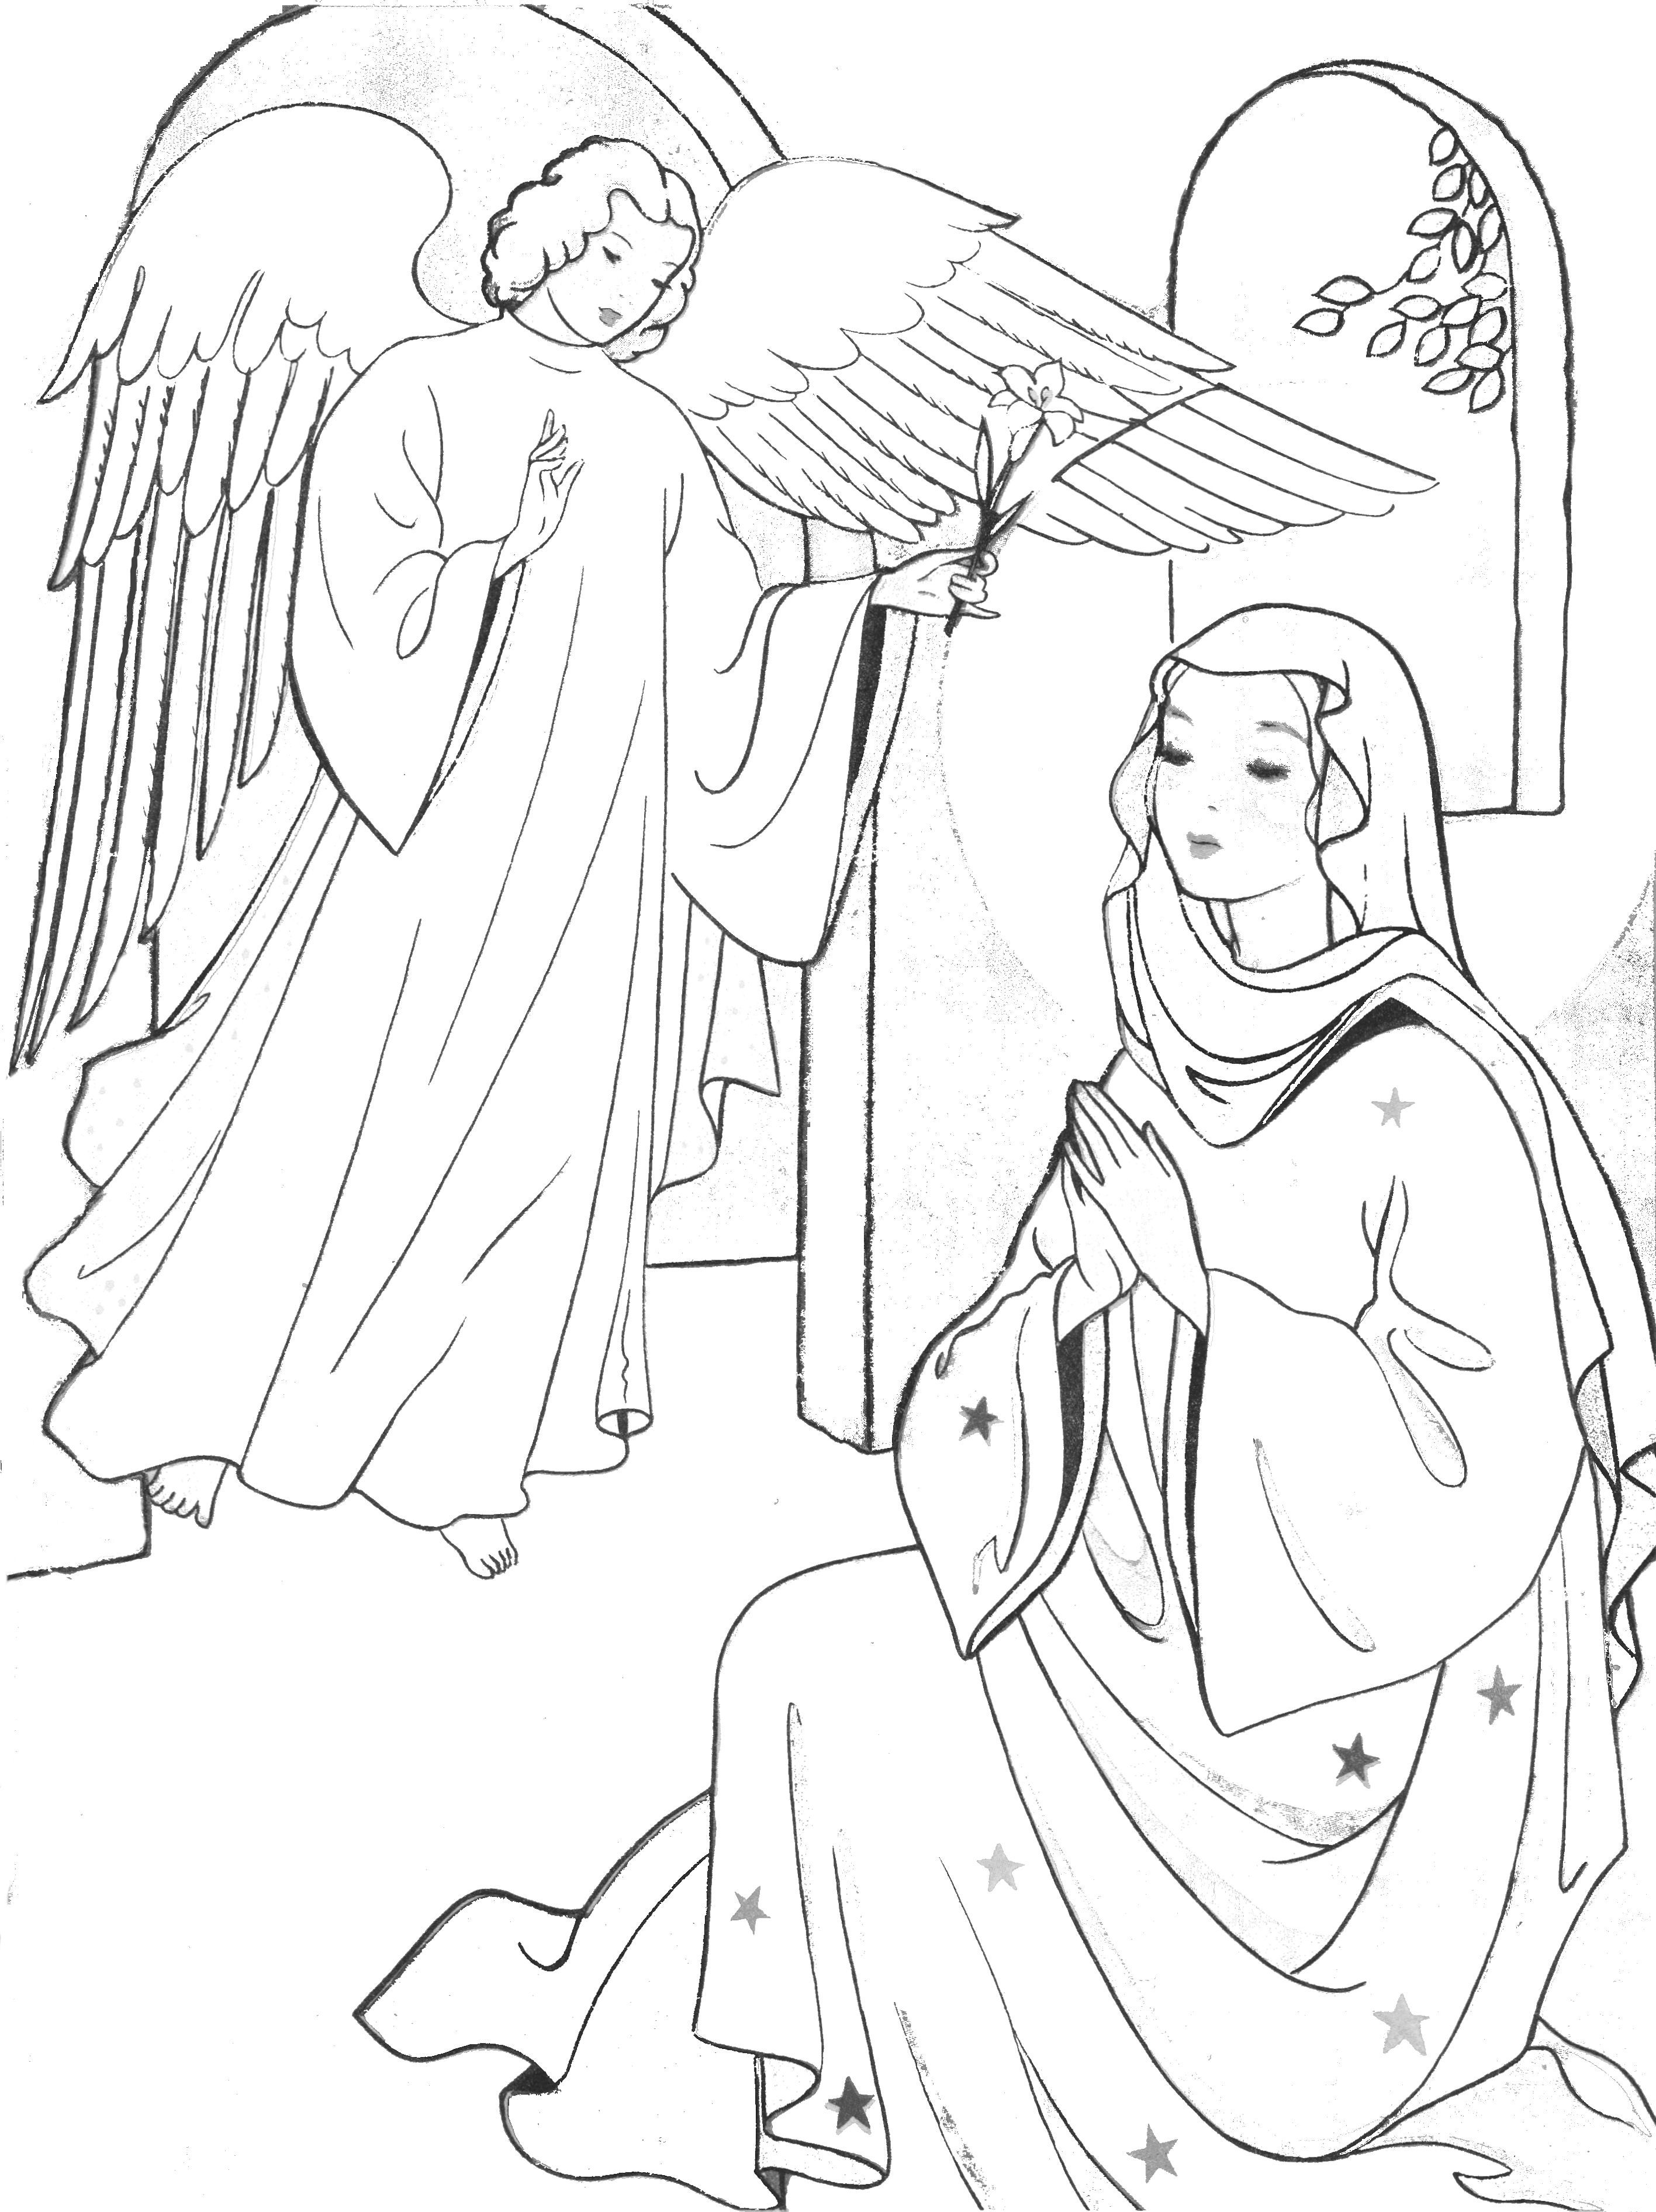 Annunciation Coloring Pages Sunday School Coloring Pages Catholic Coloring Bible Coloring Pages